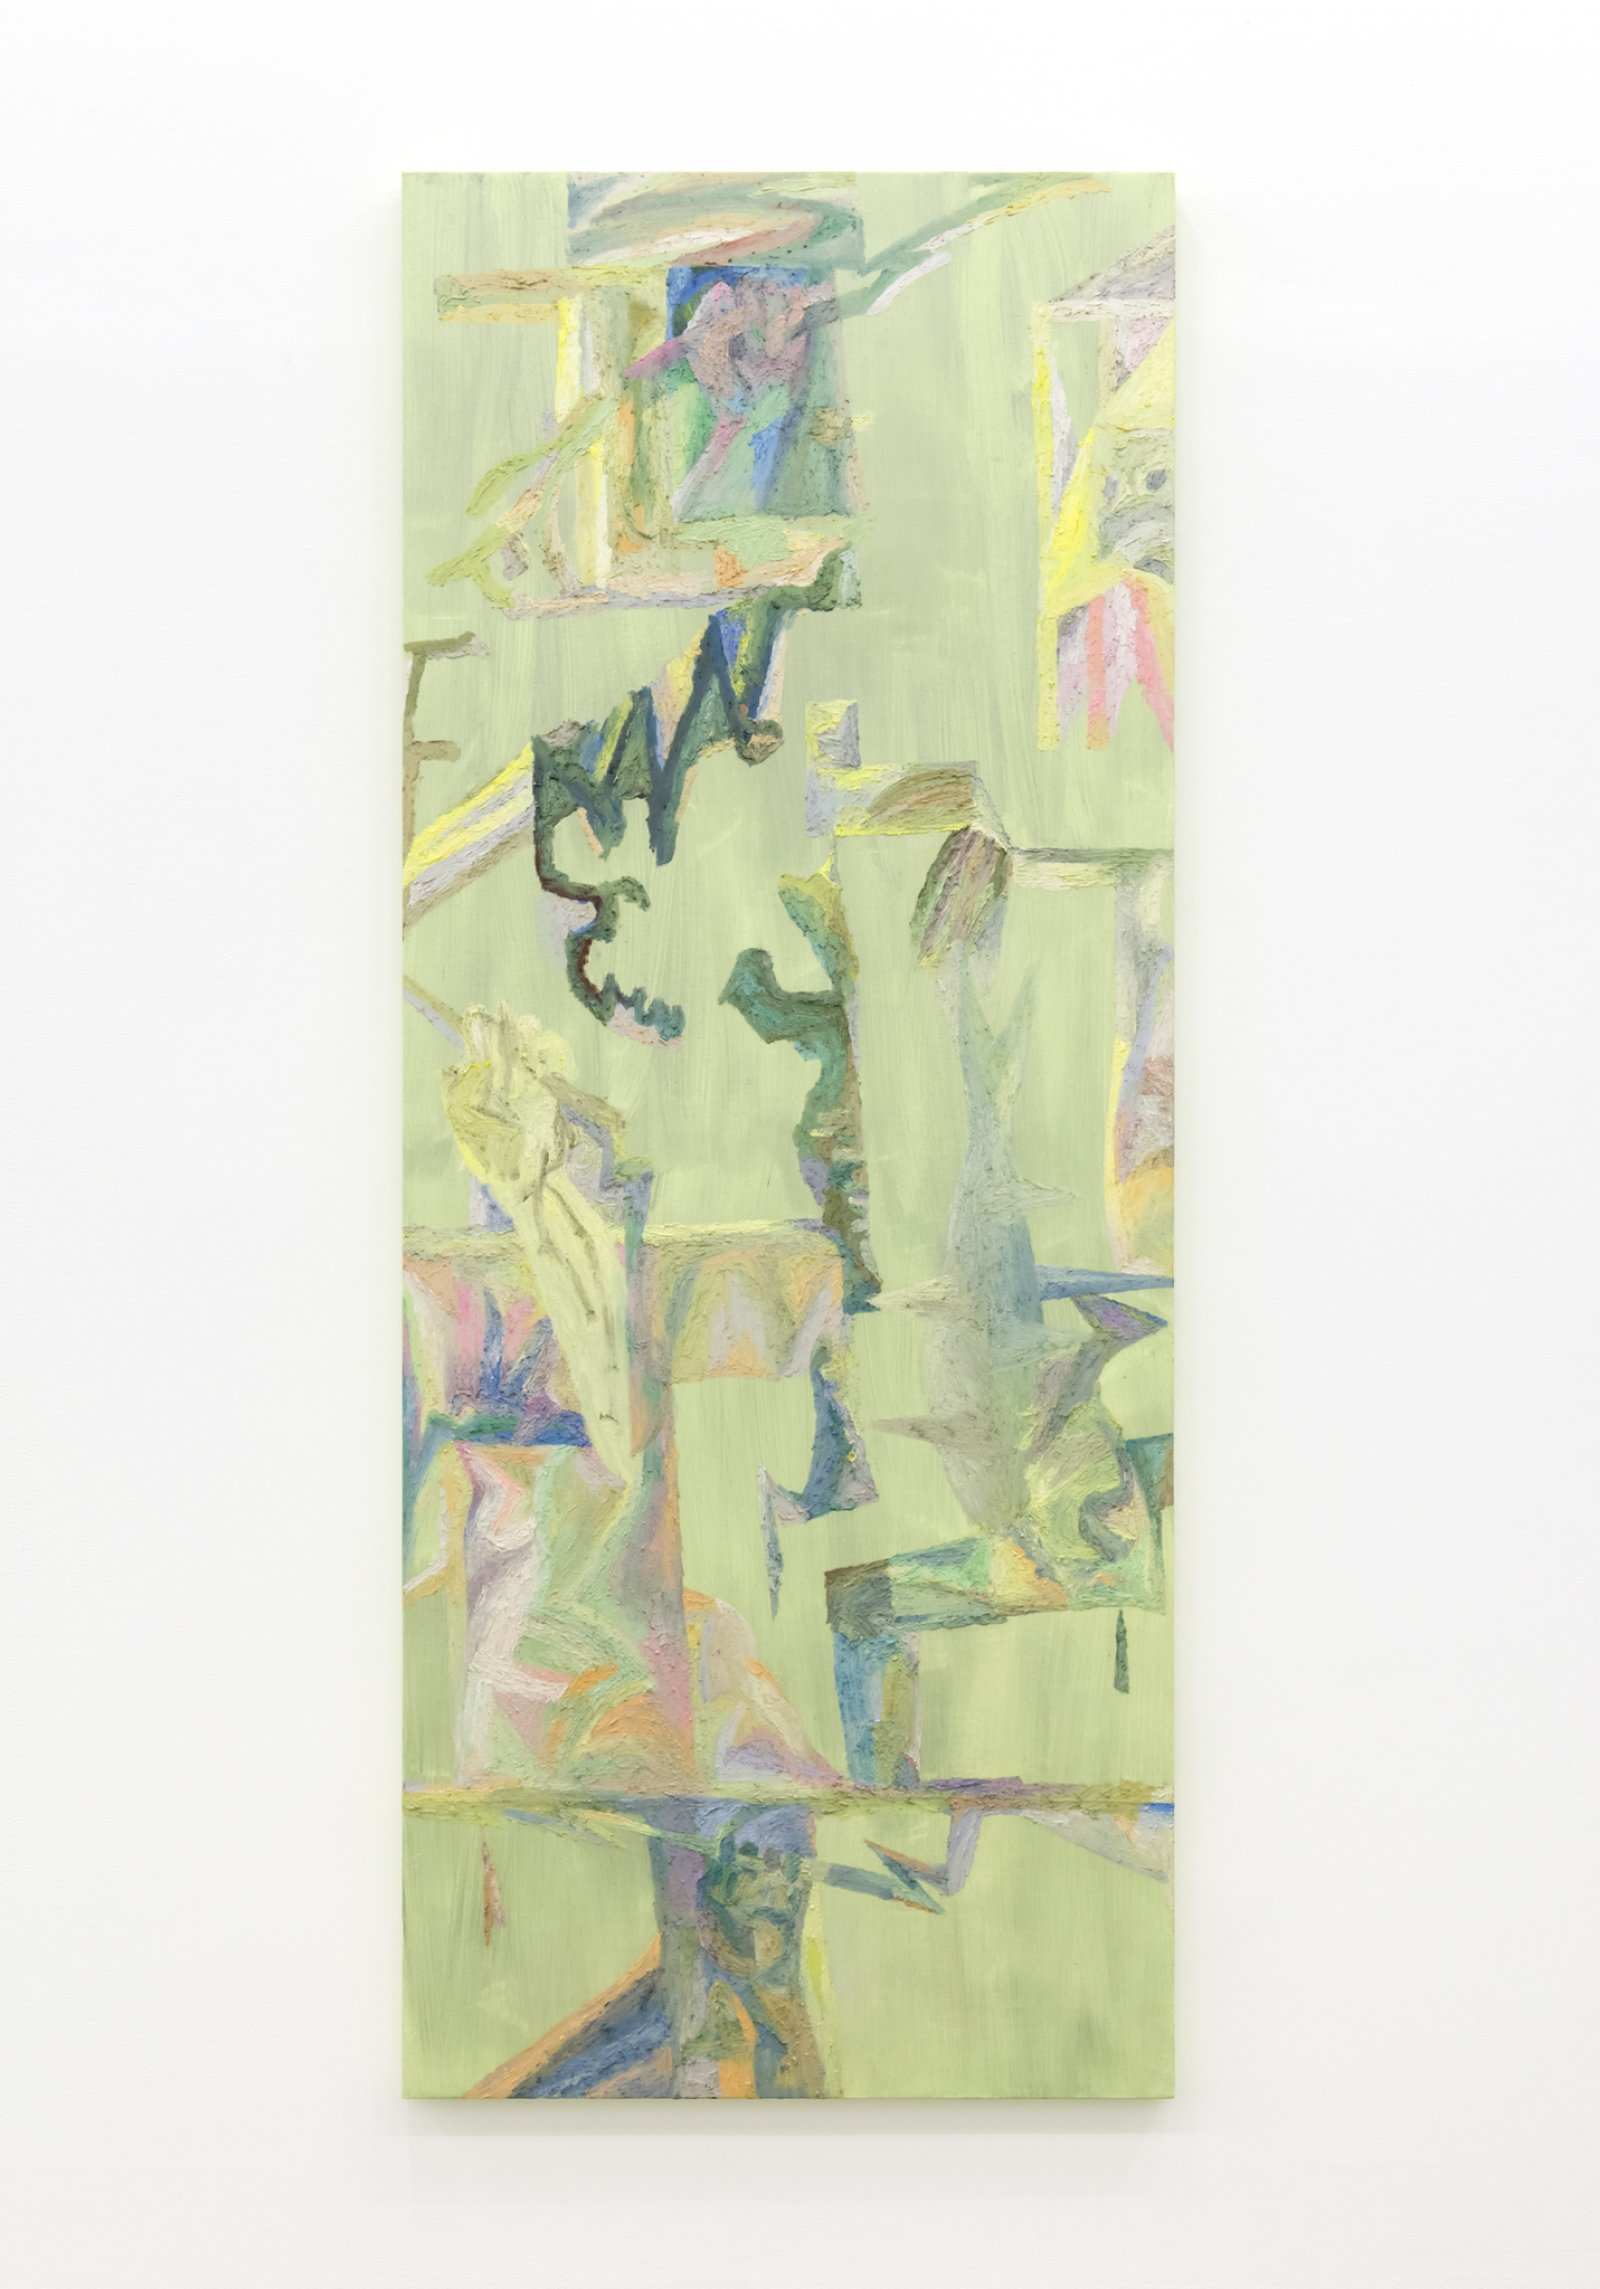 Rebecca Brewer,Fire Stuck in Wood, 2017, oil on fabric on panel, 83 x 33 in. (211 x 84 cm)